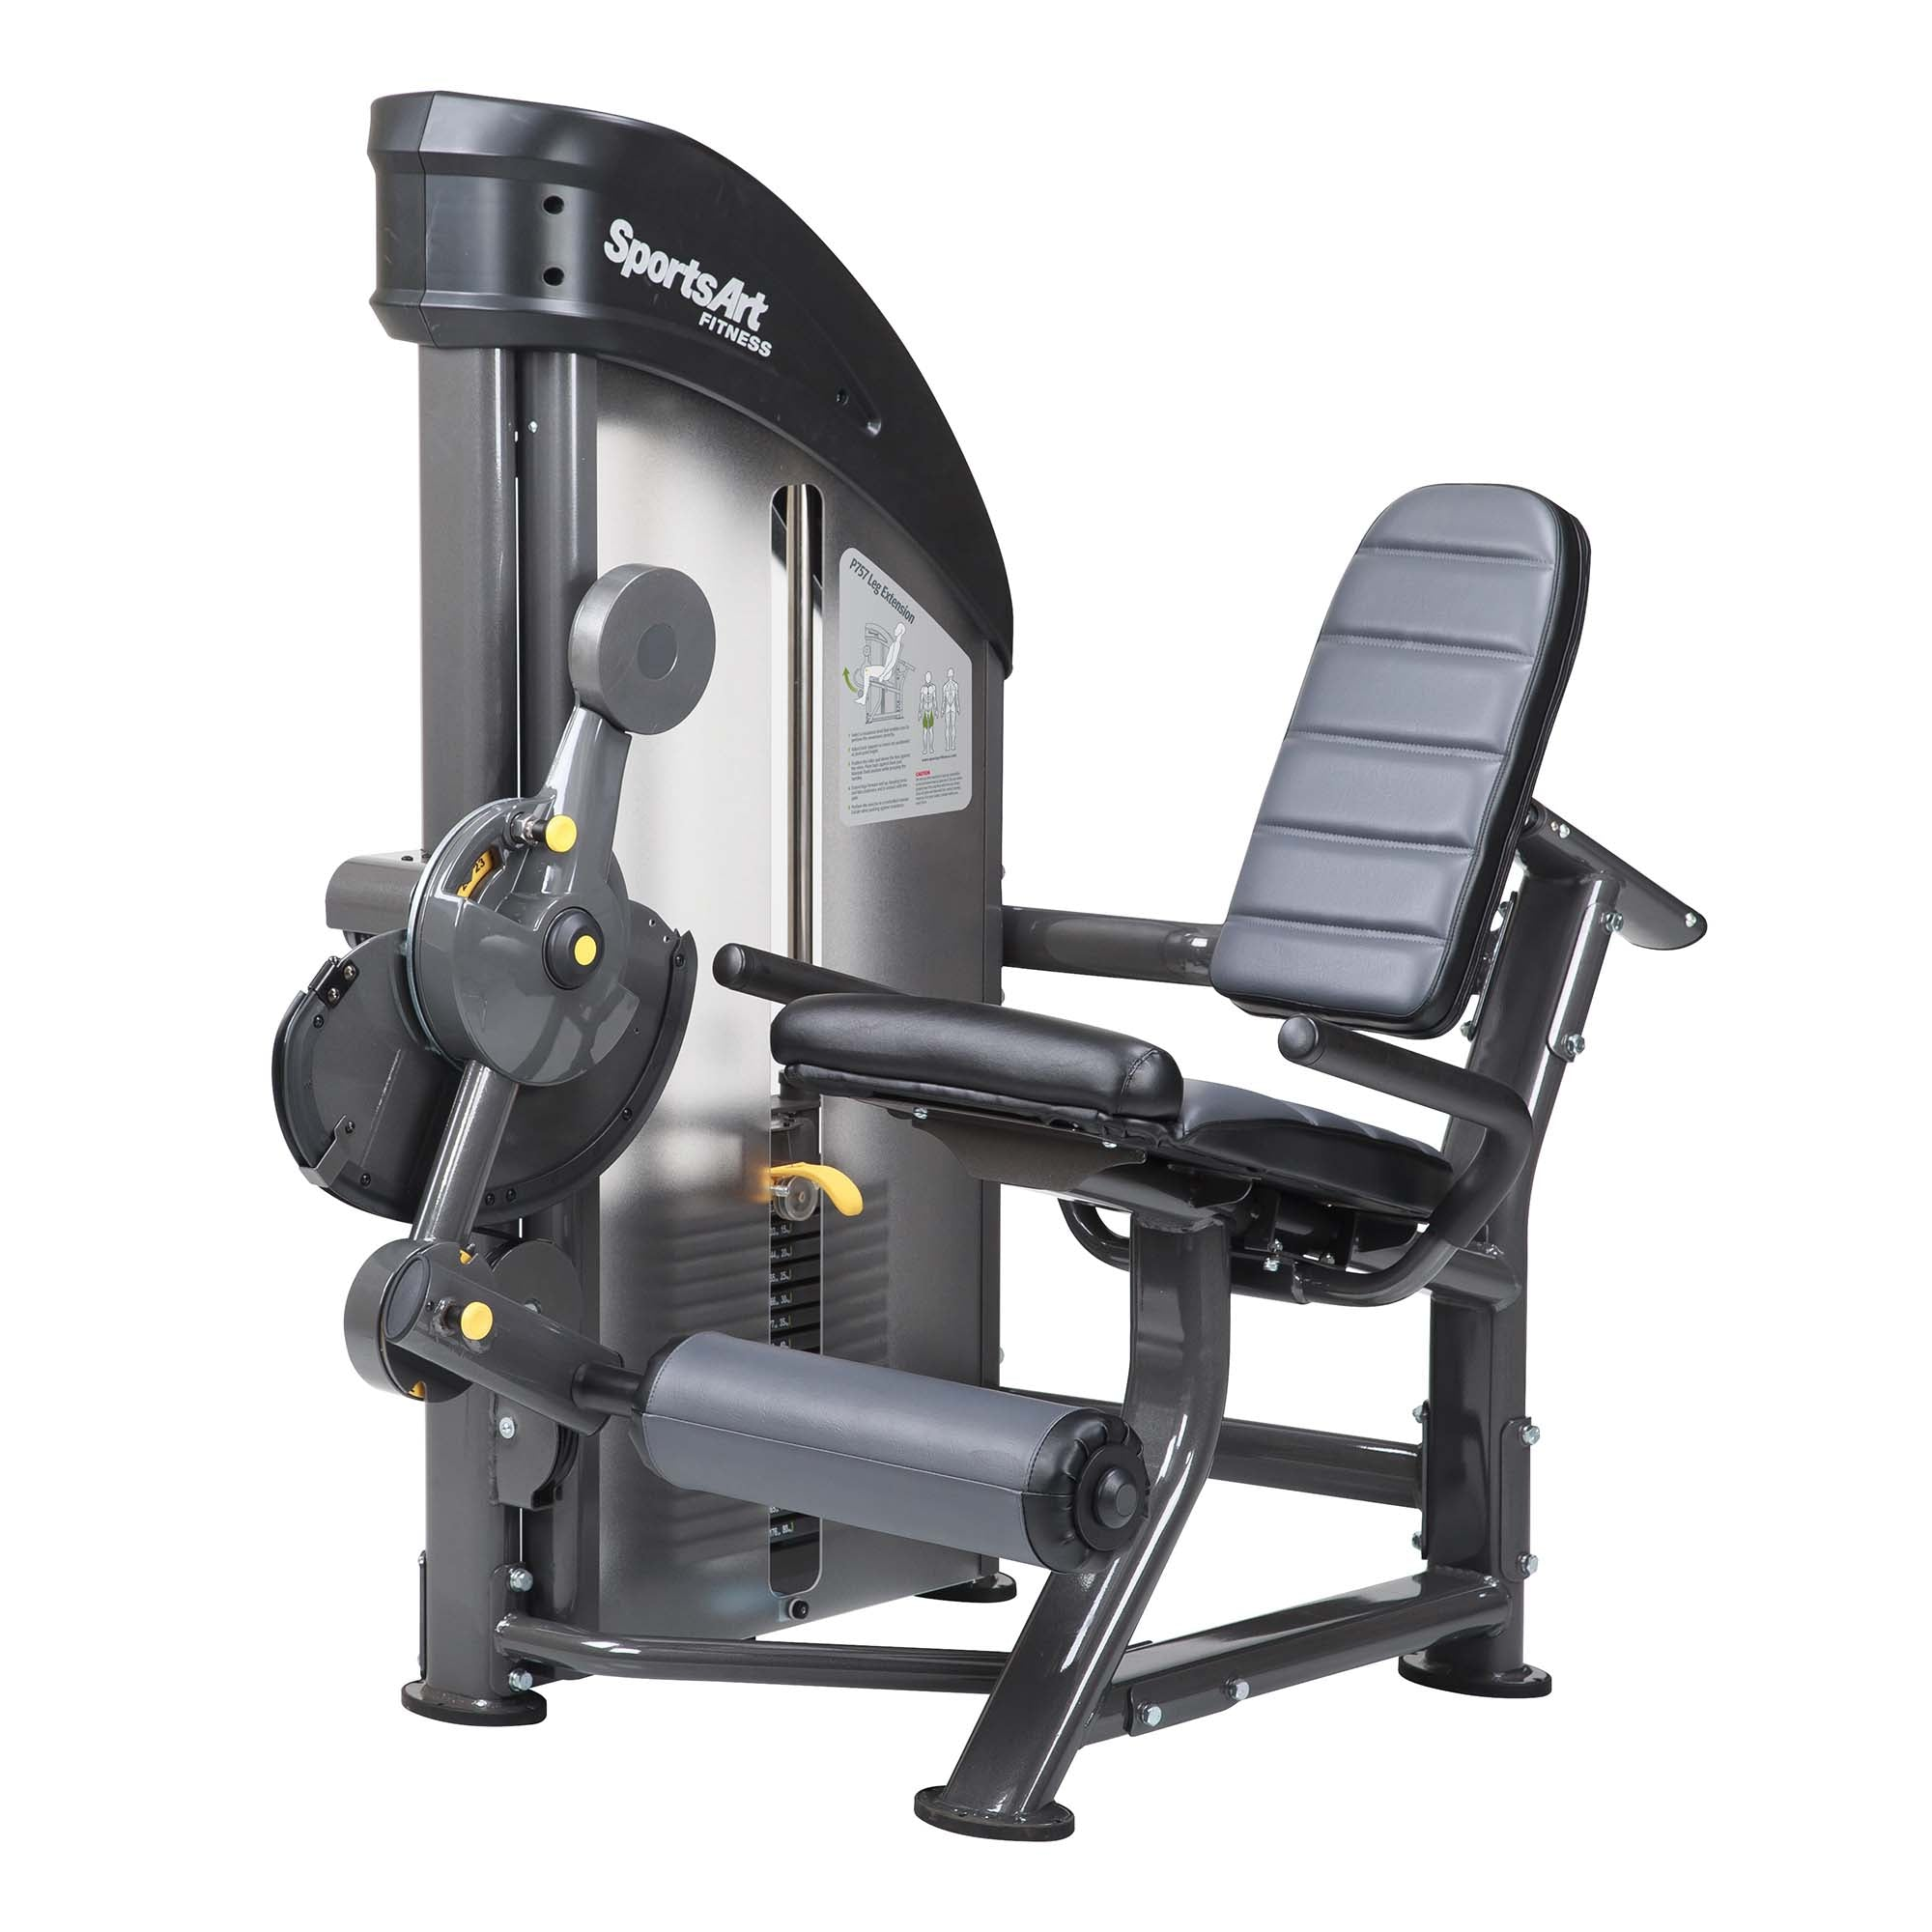 SportsArt P757 PERFORMANCE LEG EXTENSION Machine